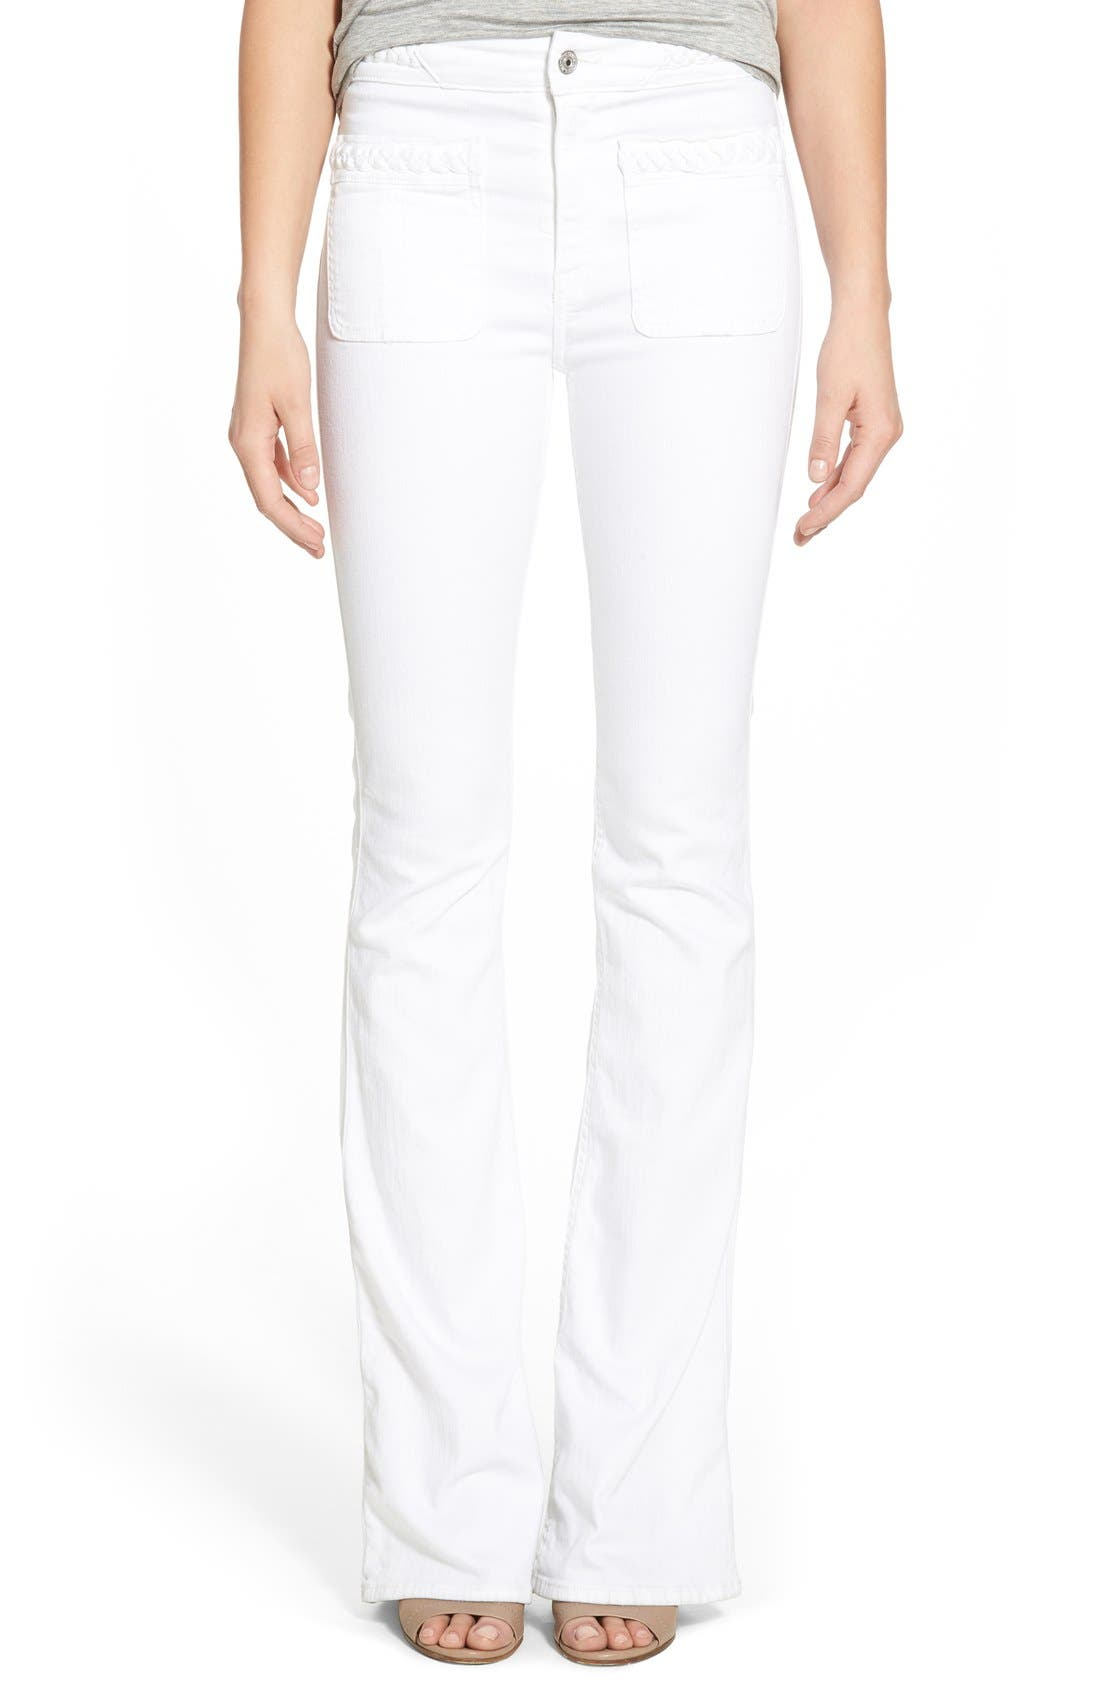 Alternate Image 1 Selected - 7 For All Mankind® High Rise Braided Trim Flare Jeans (White Fashion)